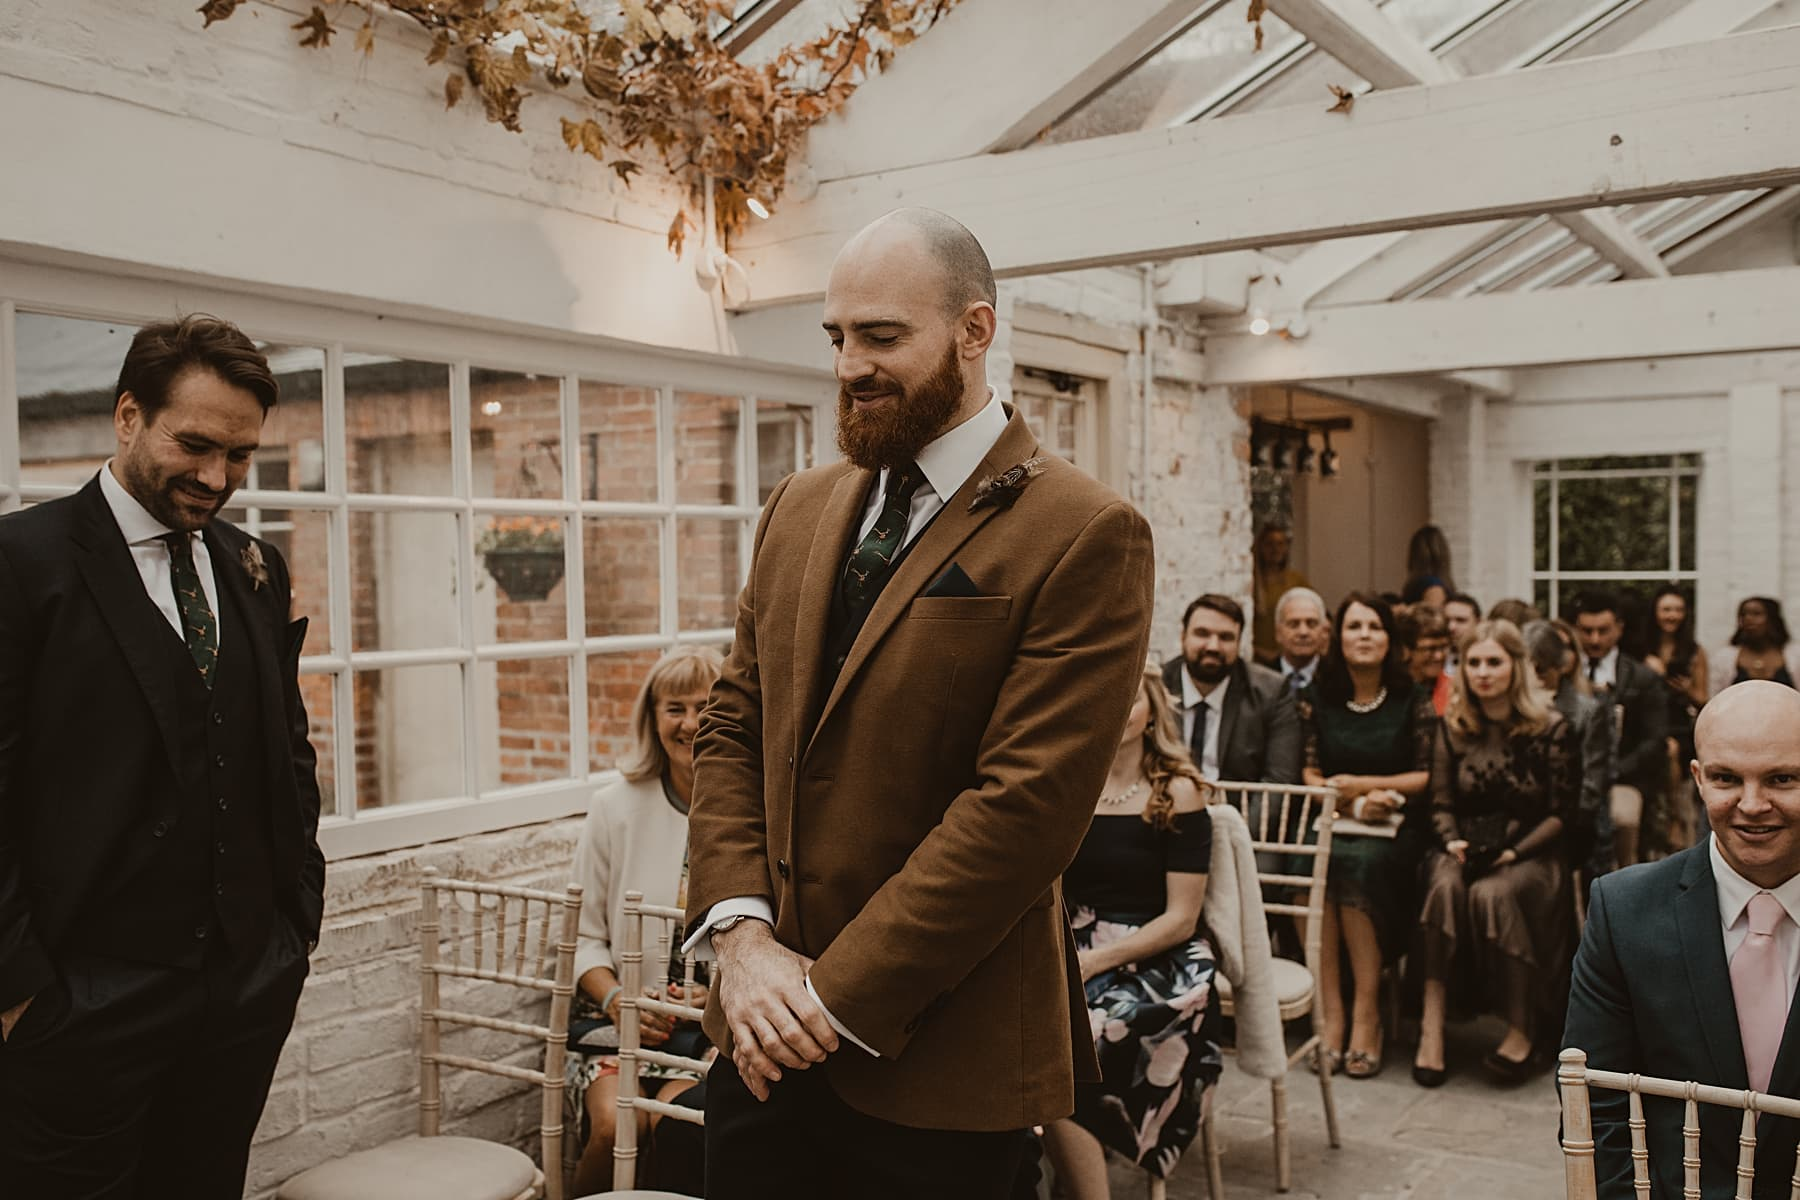 Groom waiting at the end of the aisle